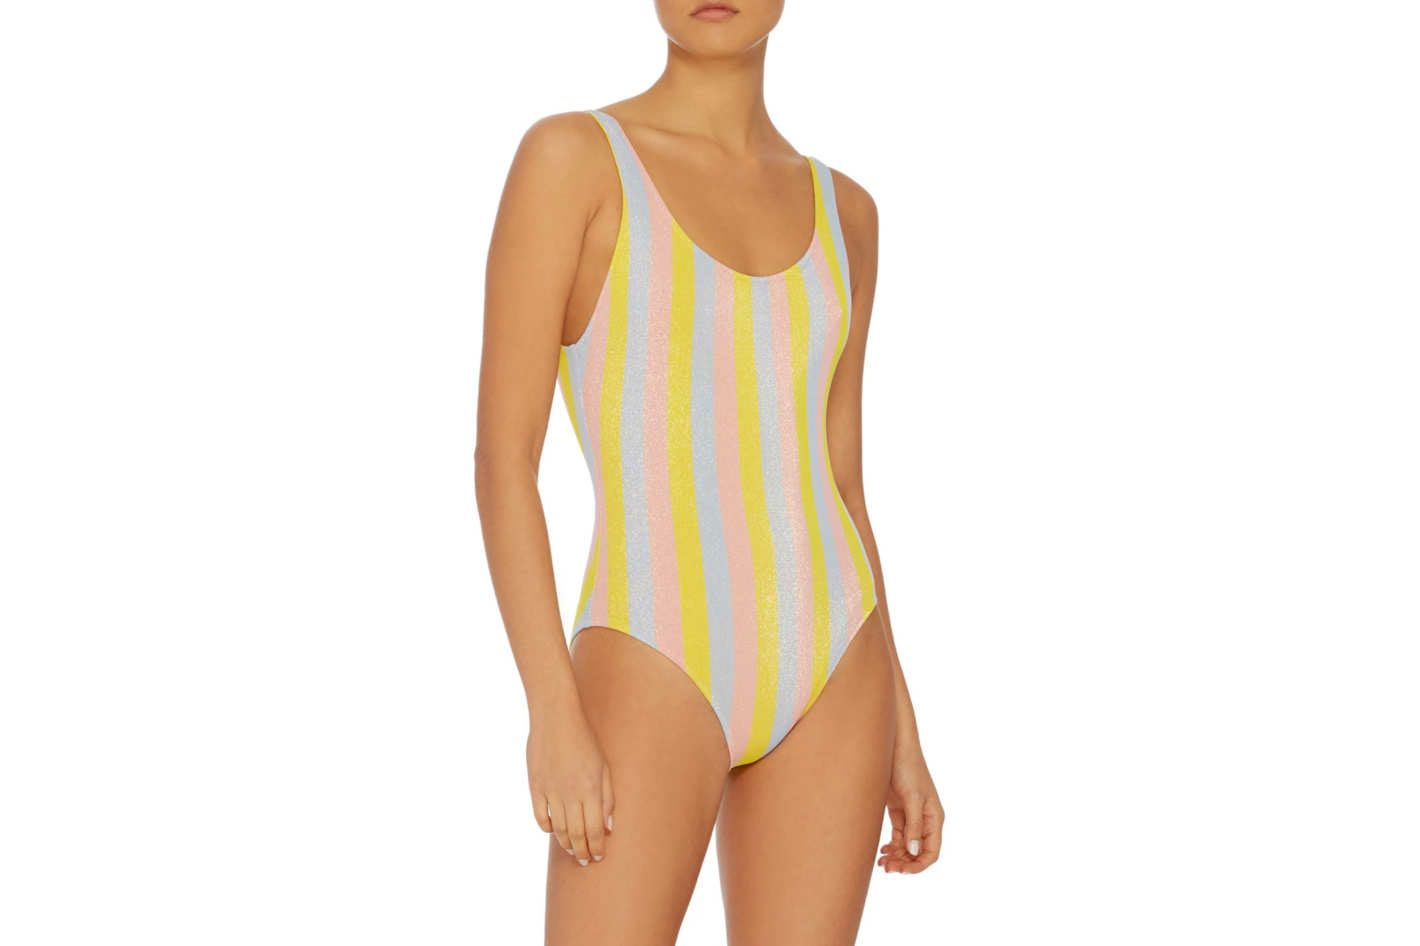 45bb2a7849 Solid & Striped The Anne-Marie Striped One Piece Swimsuit at Moda Operandi